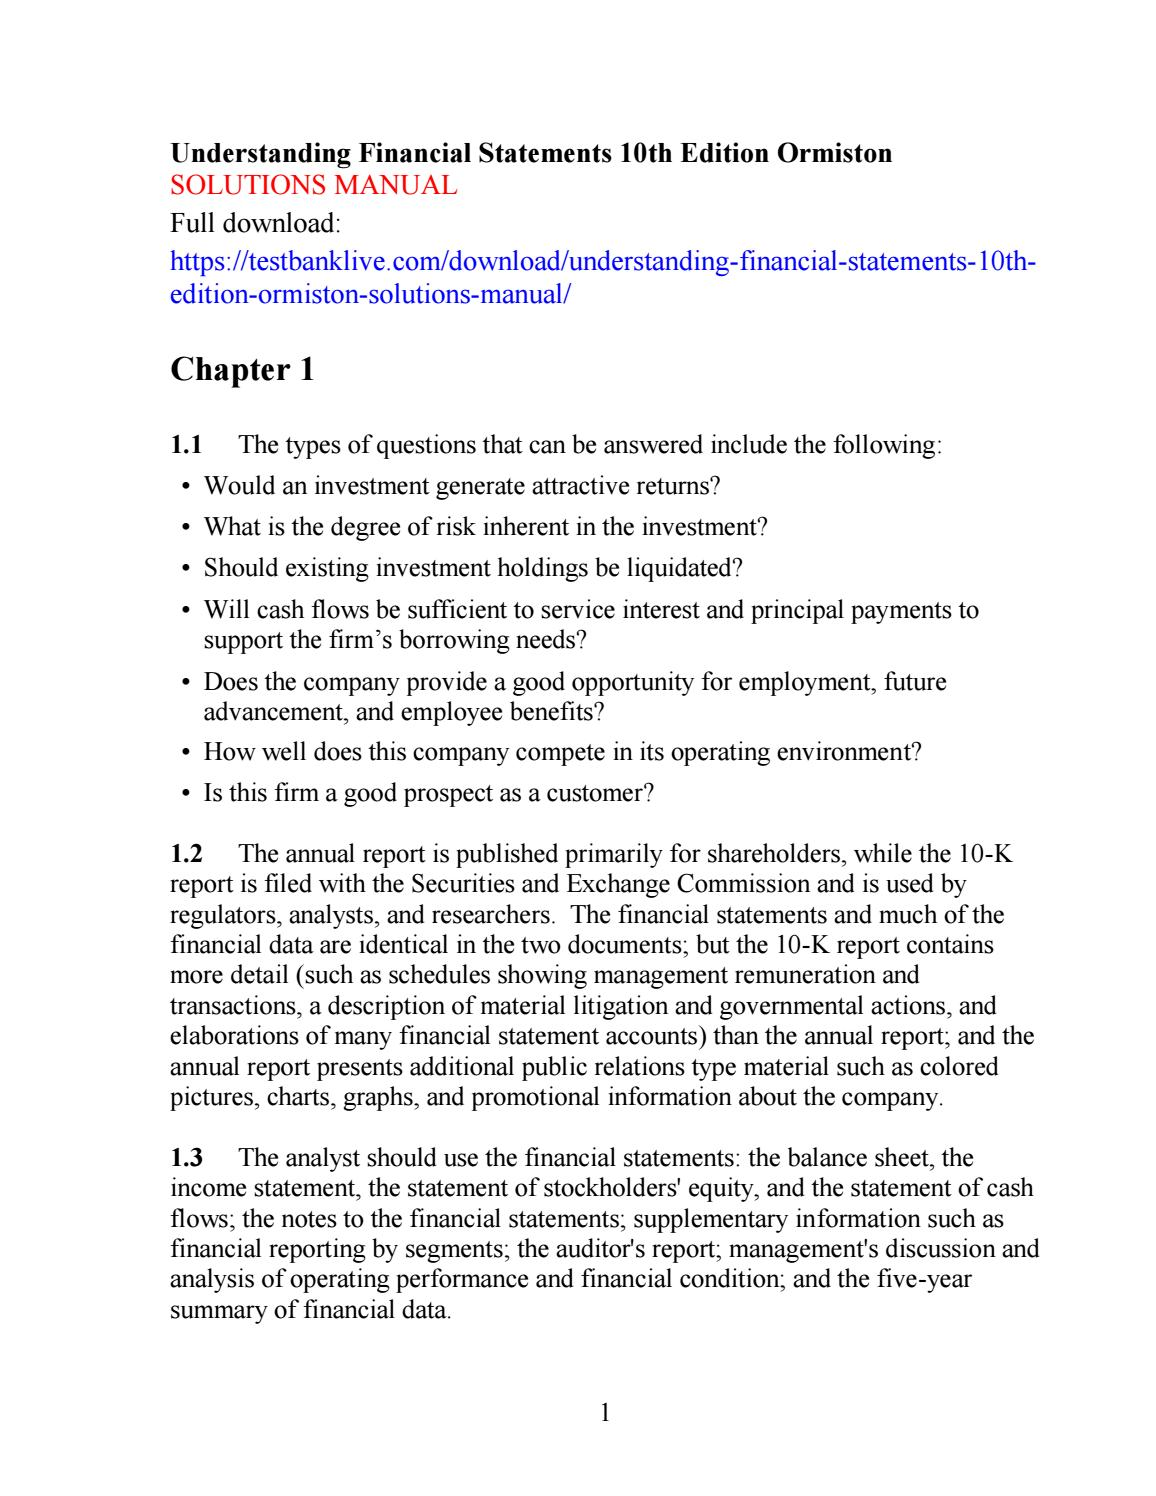 Understanding financial statements 10th edition ormiston solutions manual  by qhqh111 - issuu